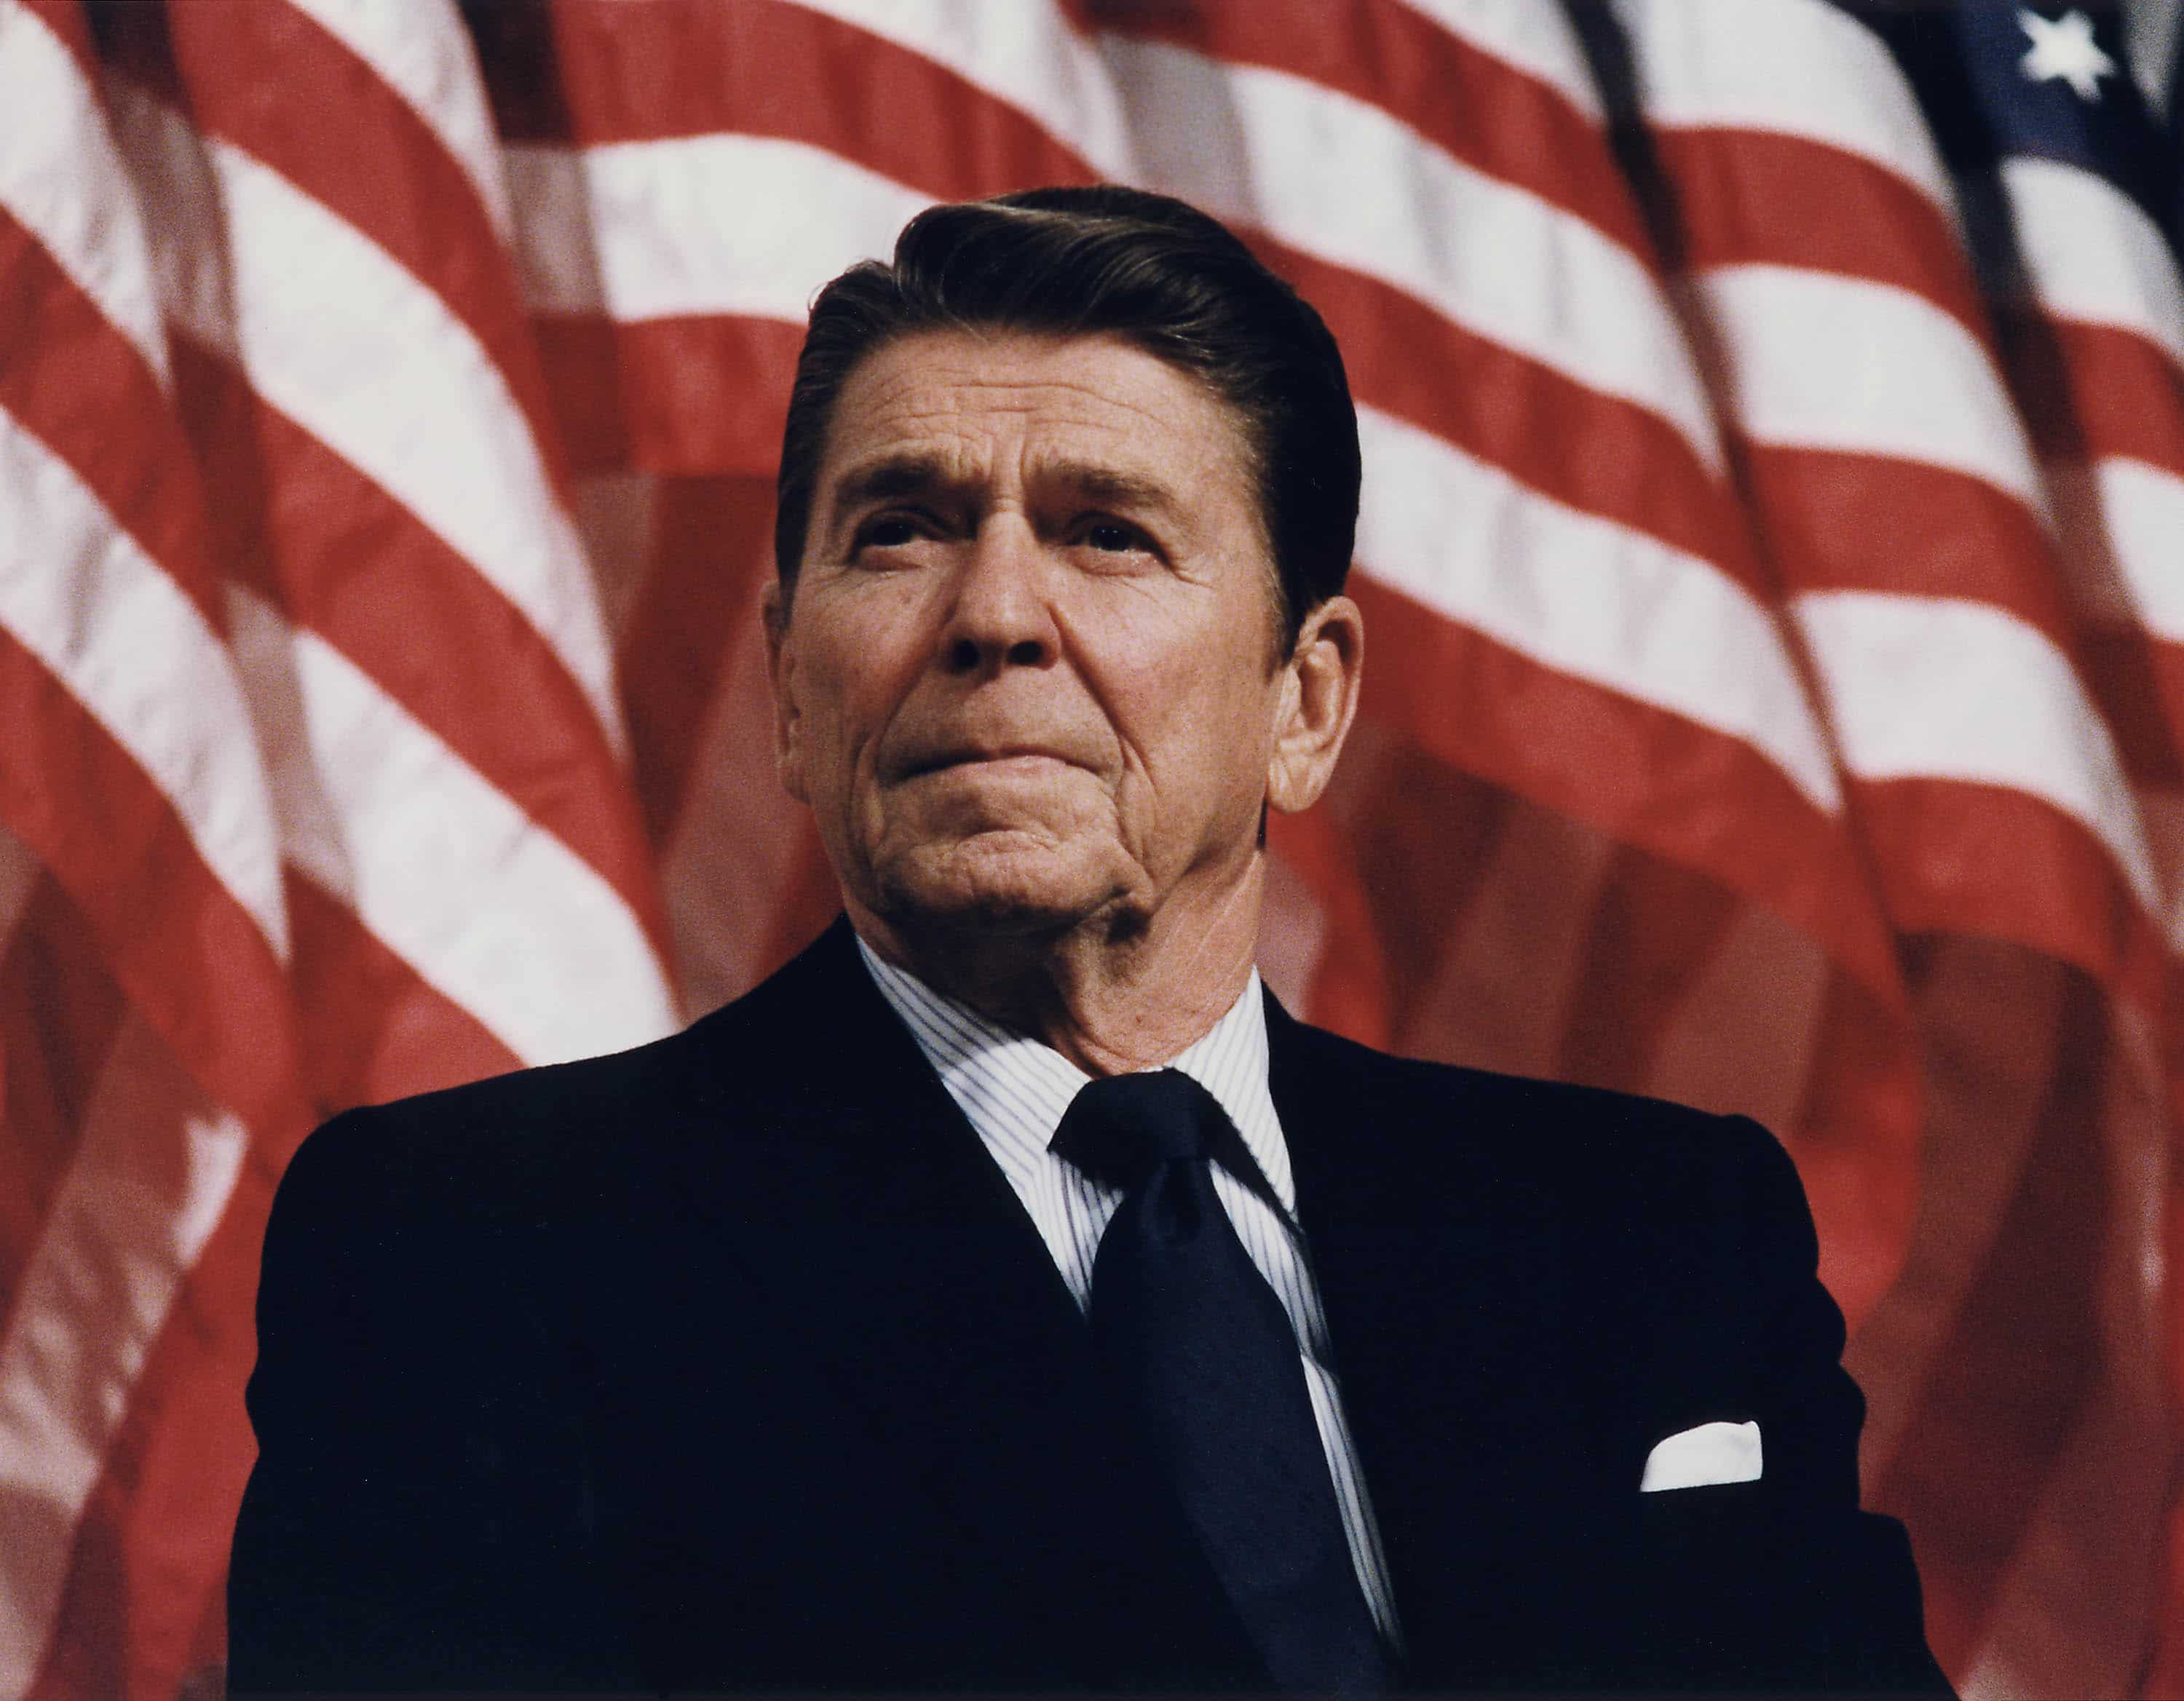 ronald reagan at durenberger rally us flag backdrop